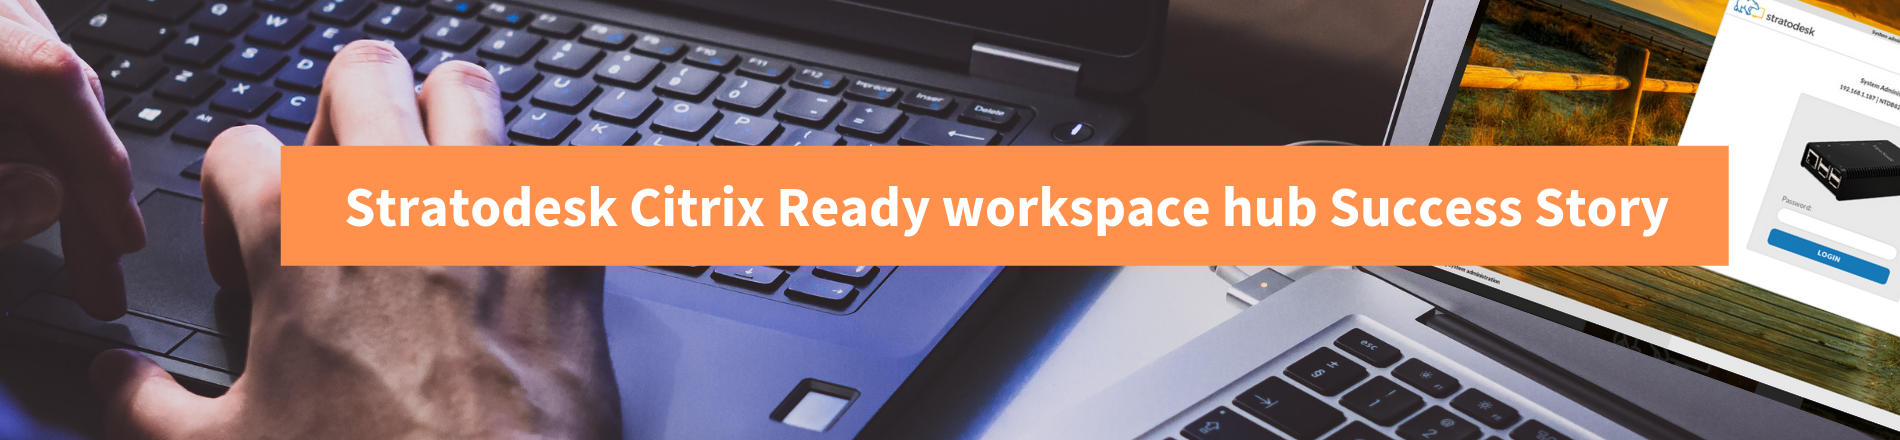 Stratodesk Citrix Ready workspace hub Success Story